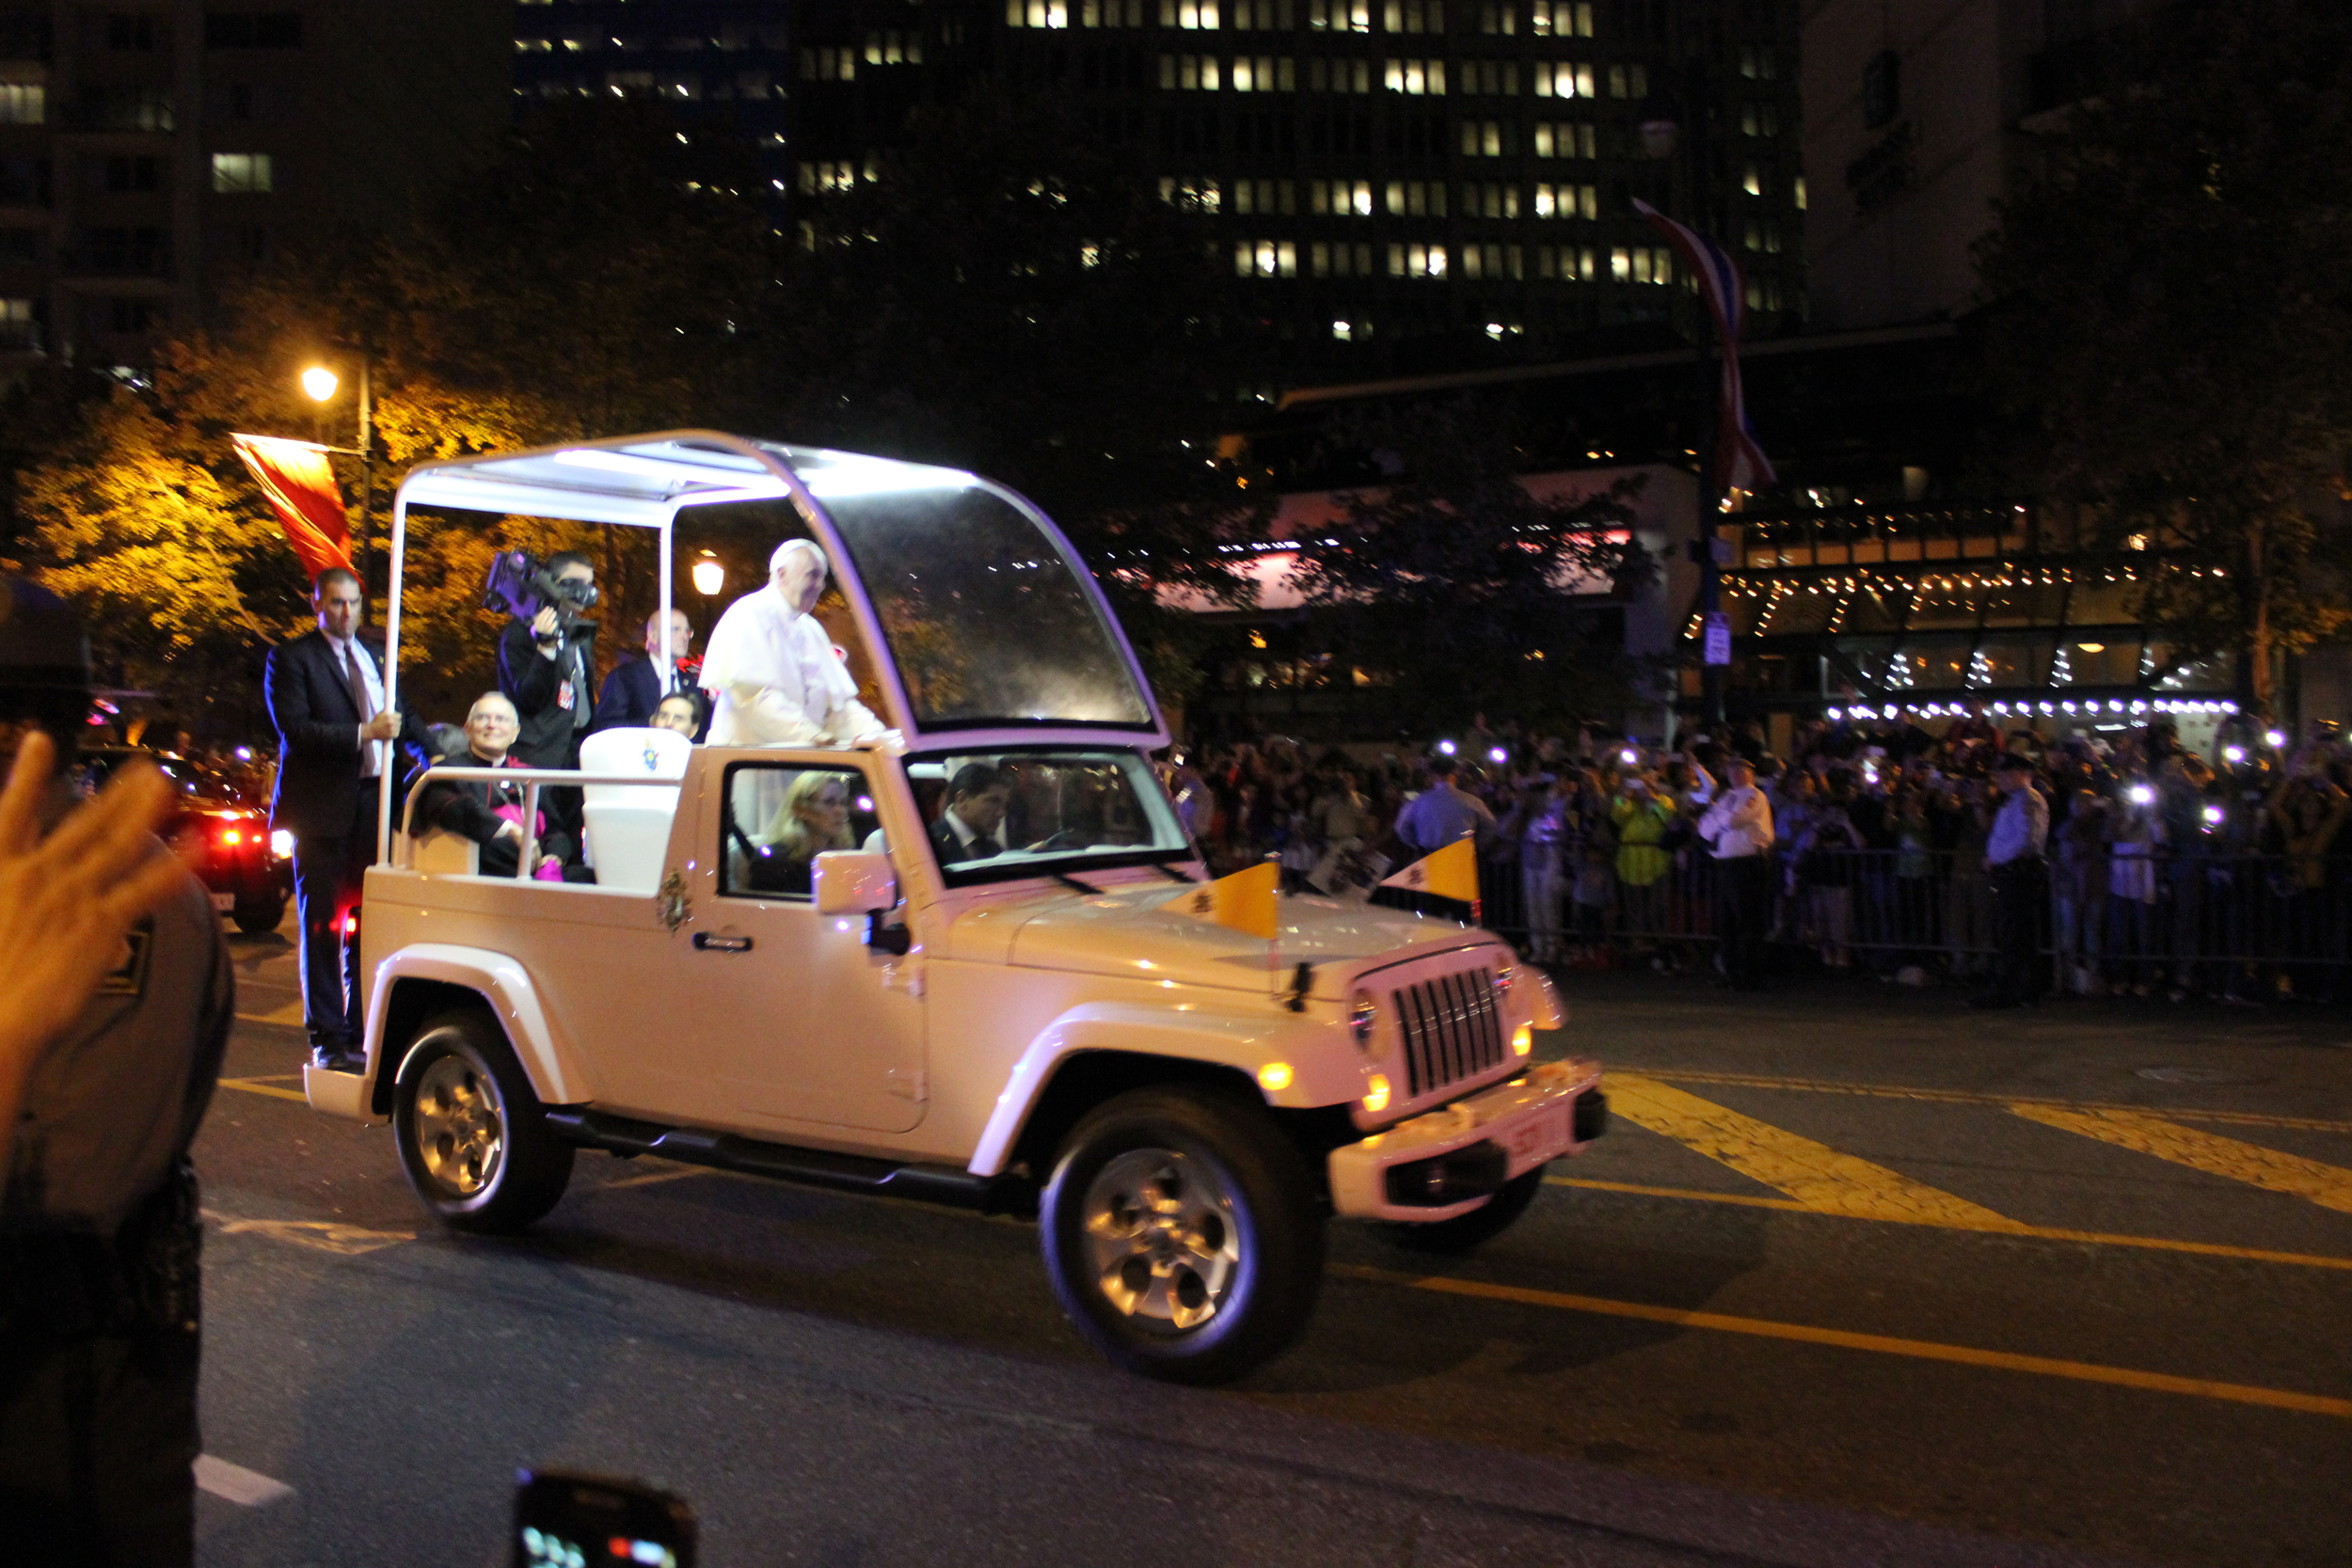 Our view on Saturday night for the first papal parade in Philadelphia.